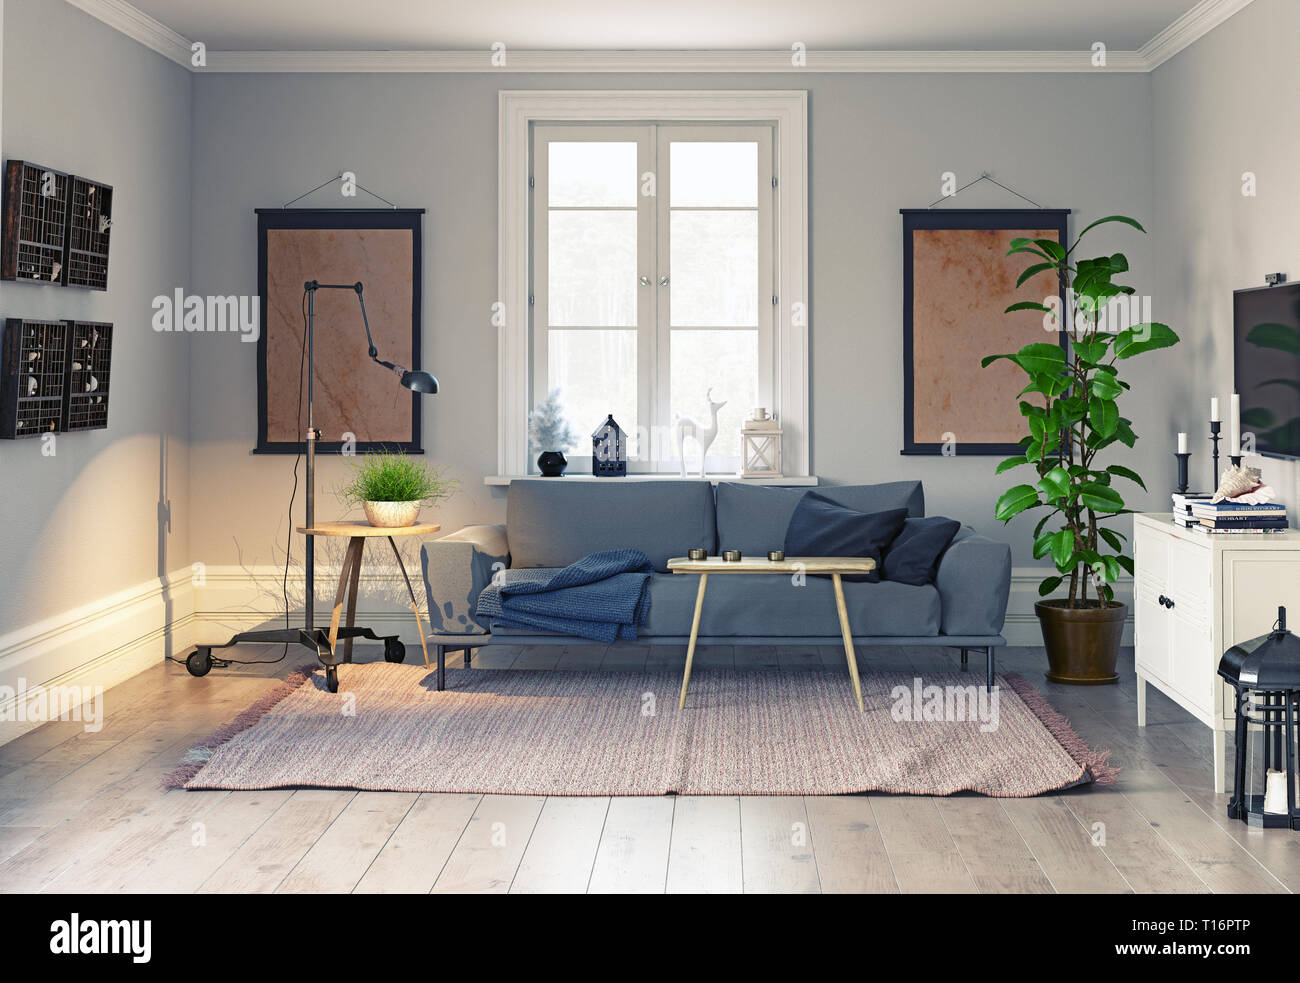 Modern Scandinavian Style Interior Design 3d Illustration Concept Stock Photo Alamy,Tribal Sleeve Tattoo Designs